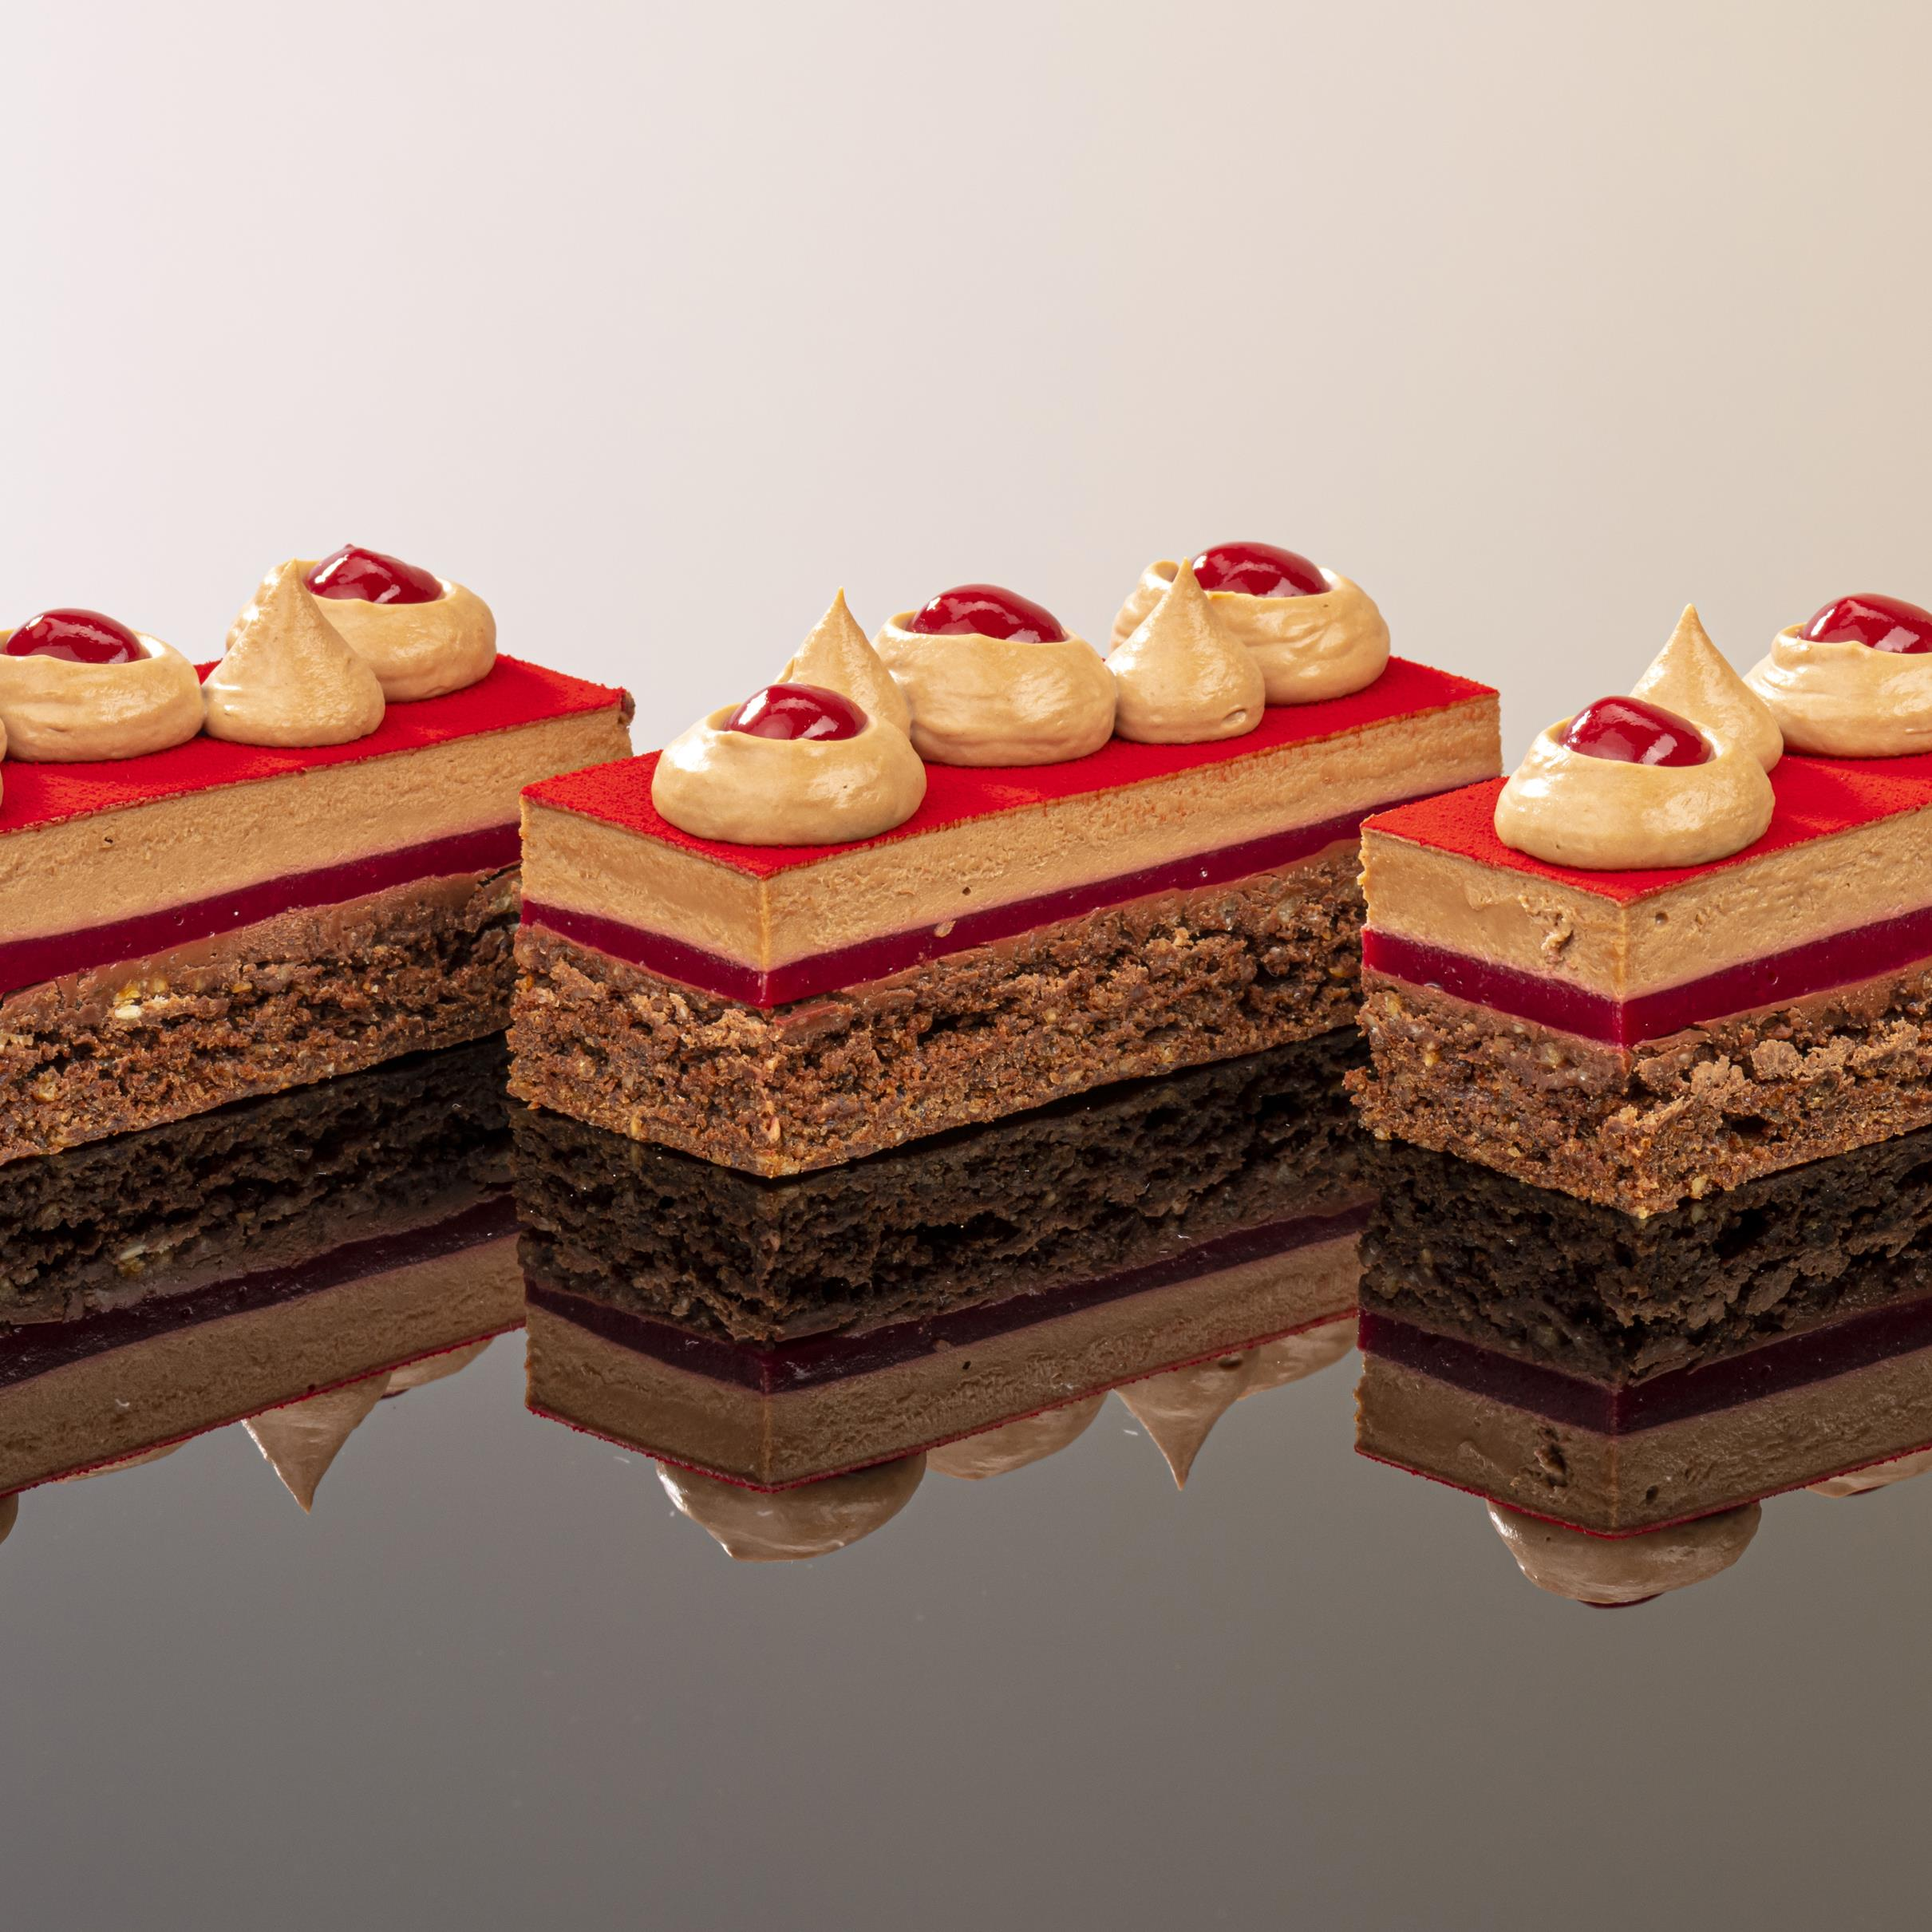 SUGAR & GLUTEN FREE CHOCOLATE RASPBERRY PETIT GATEAUX